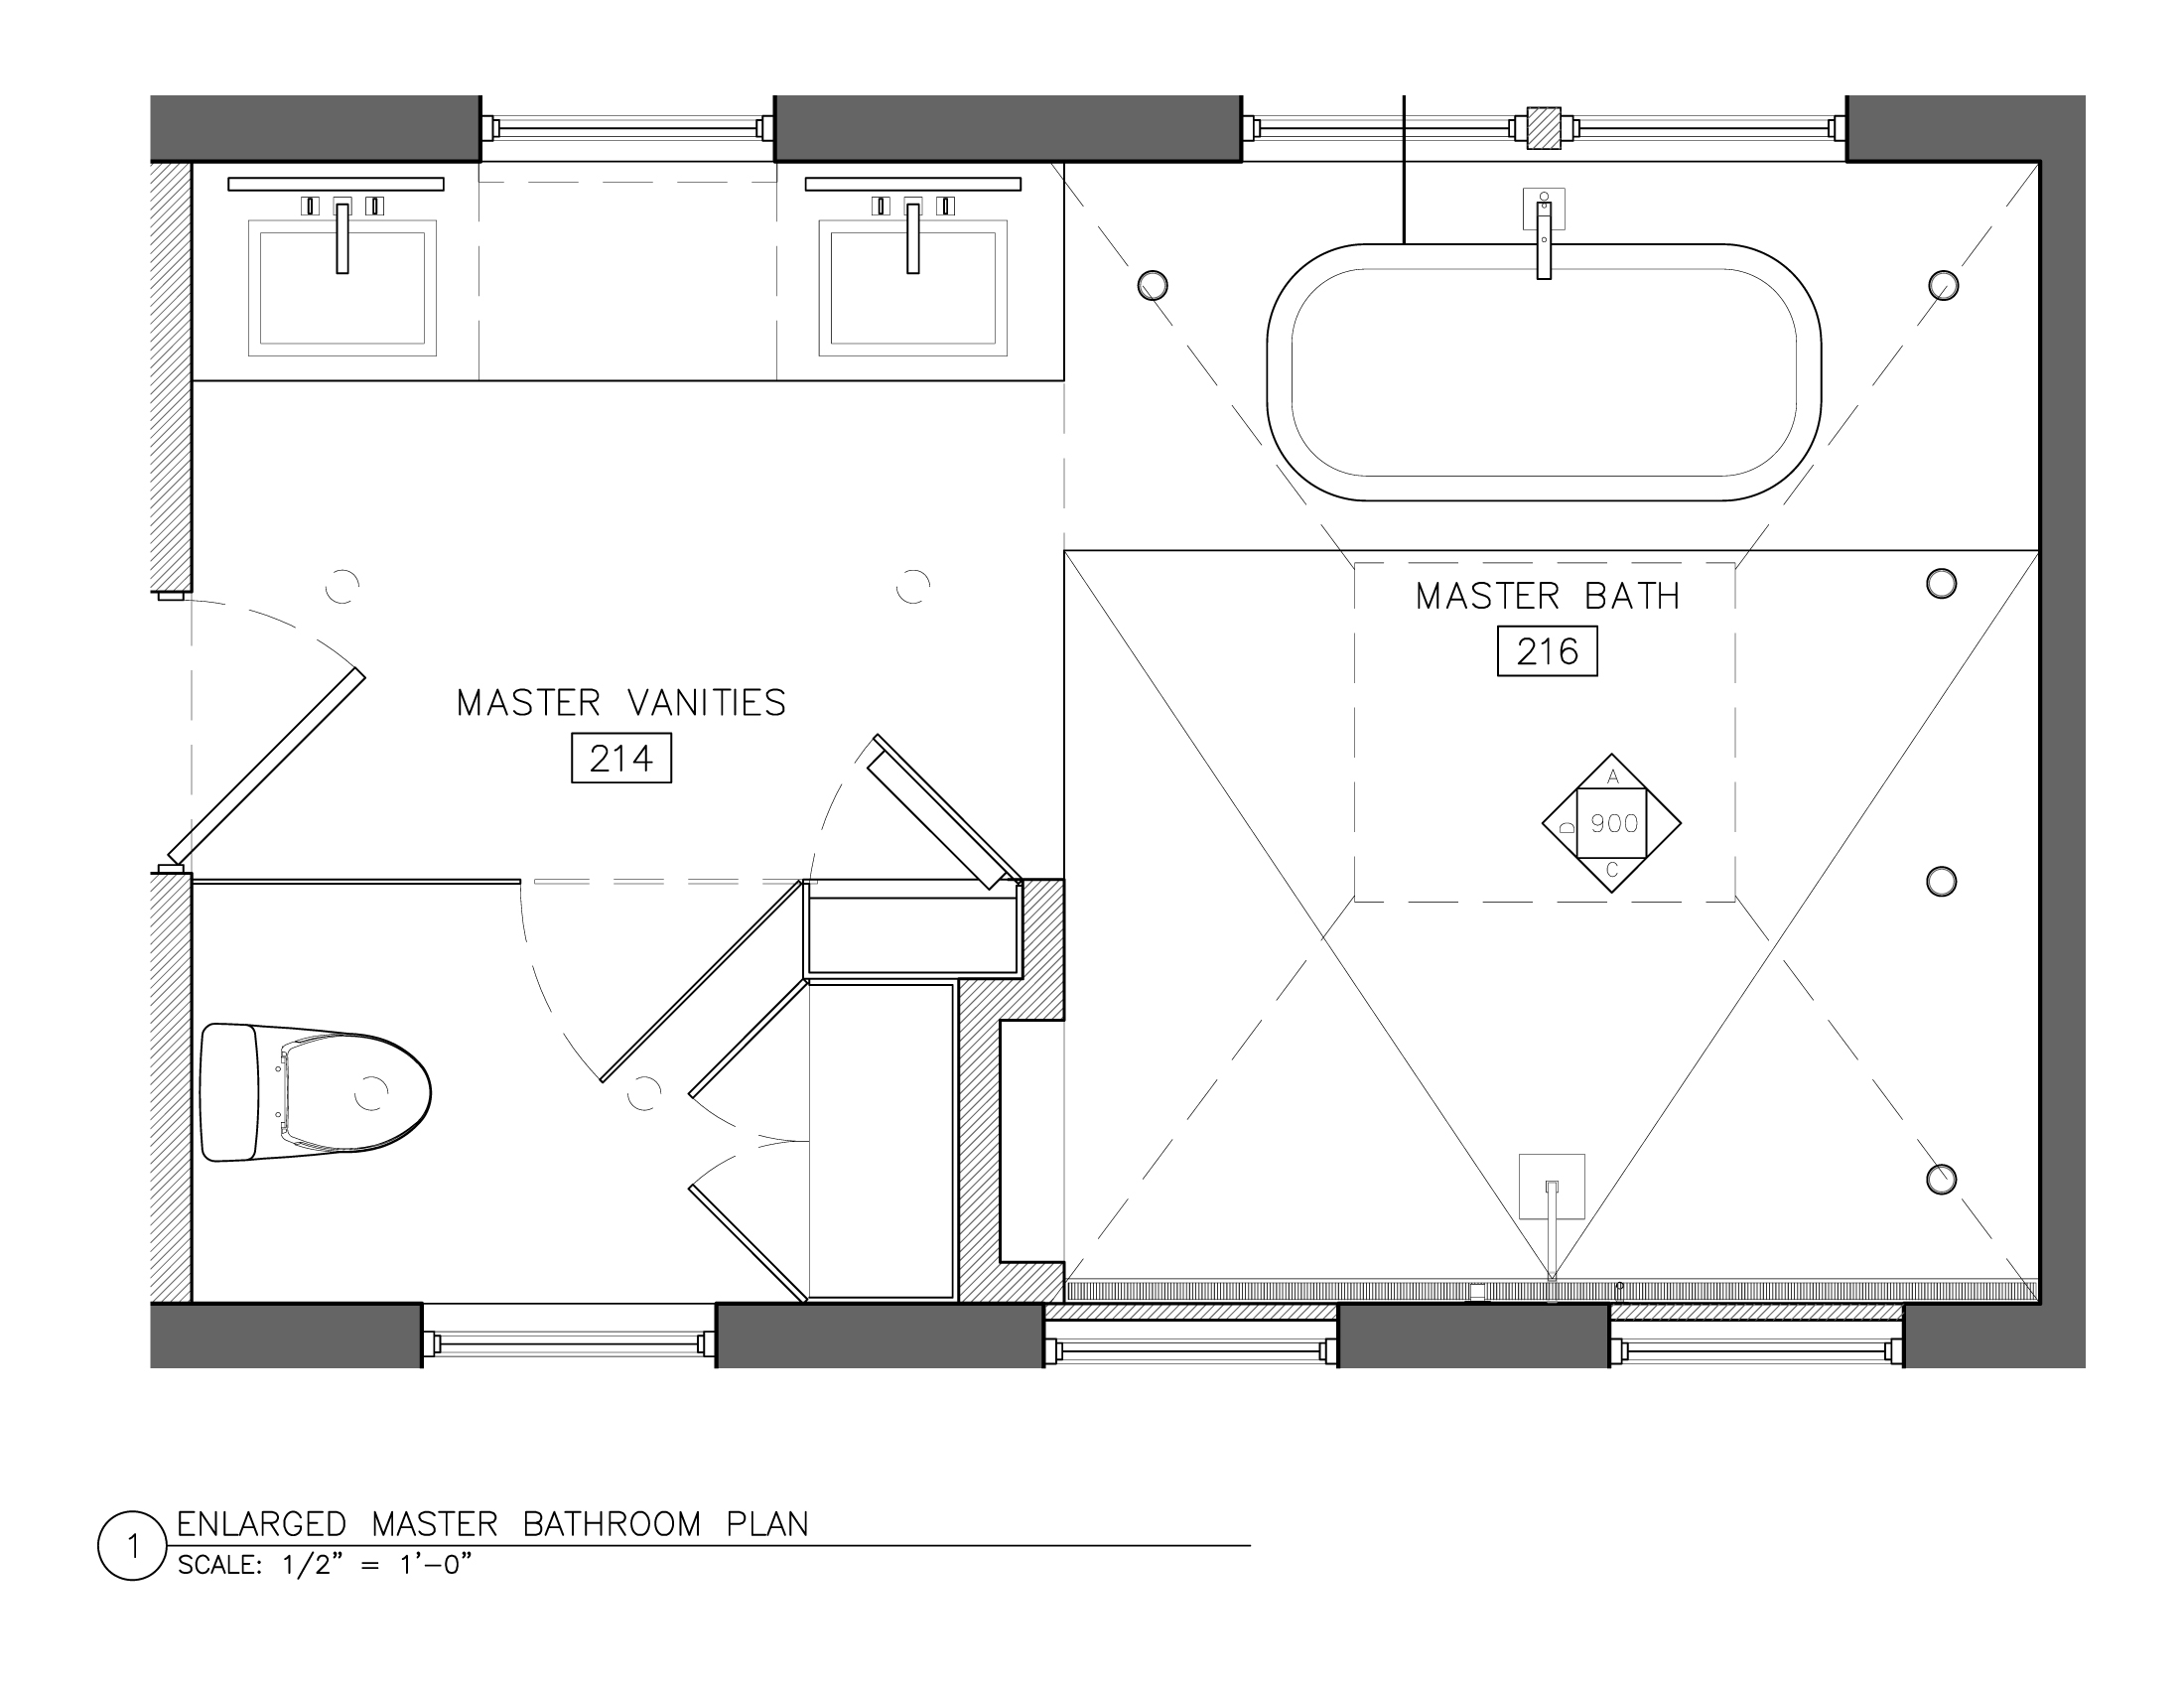 Luxury Bathrooms Plans simple luxury master bathroom floor plans suite layout intended